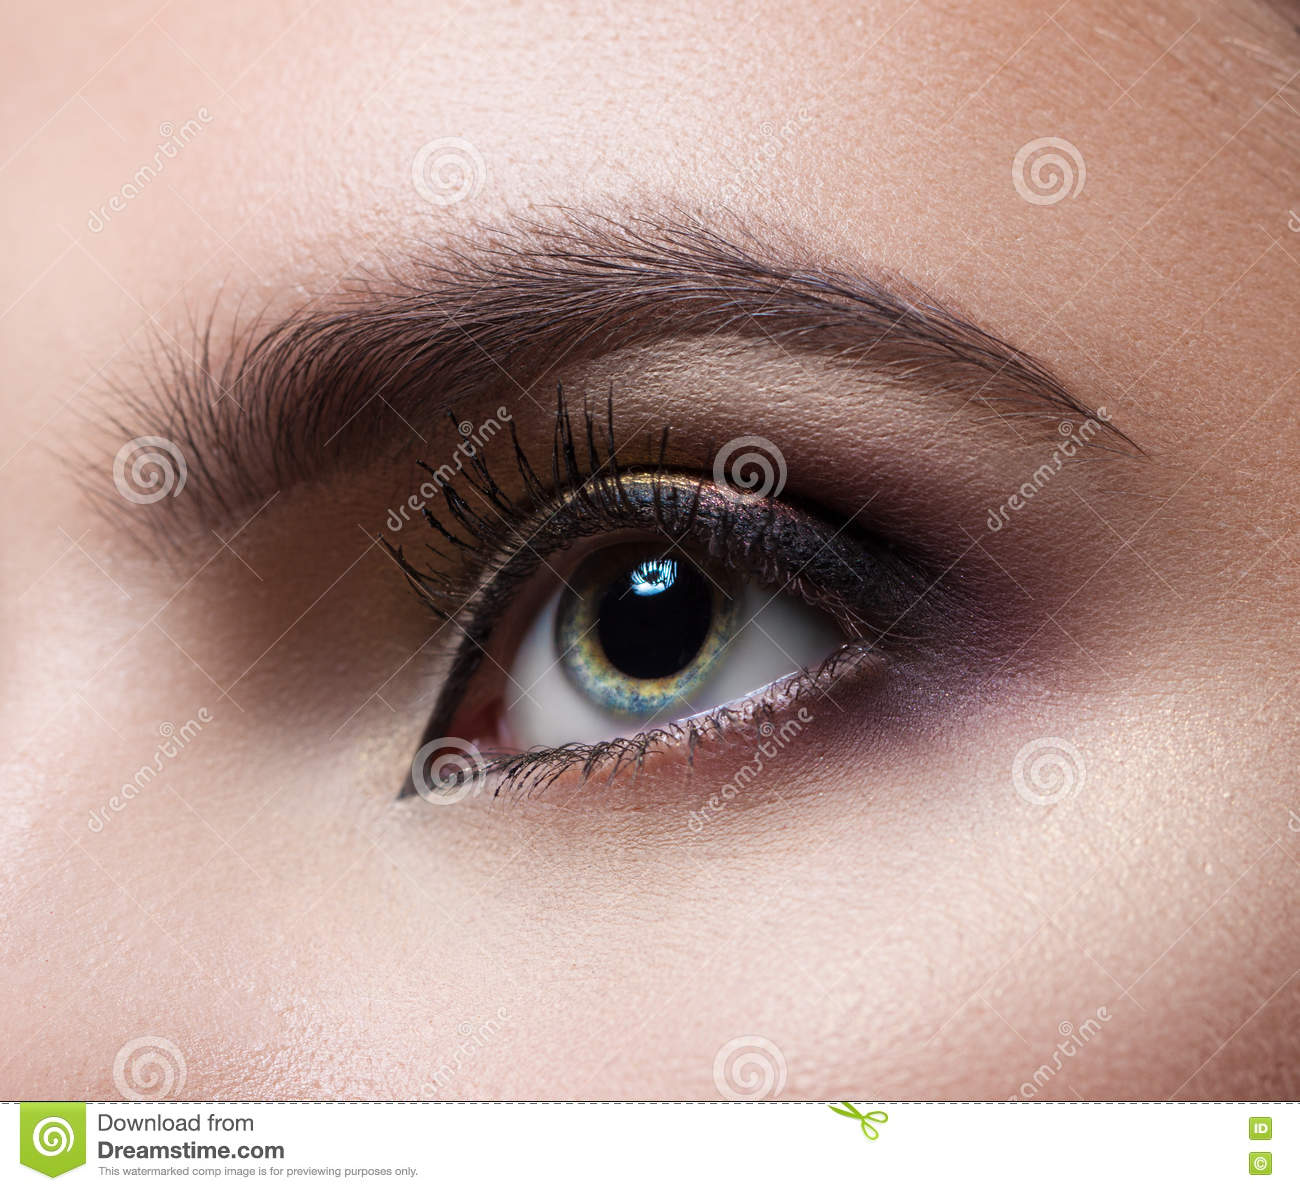 Female Eye Close Up Perfect Makeup And Eyebrows Beautiful Gray